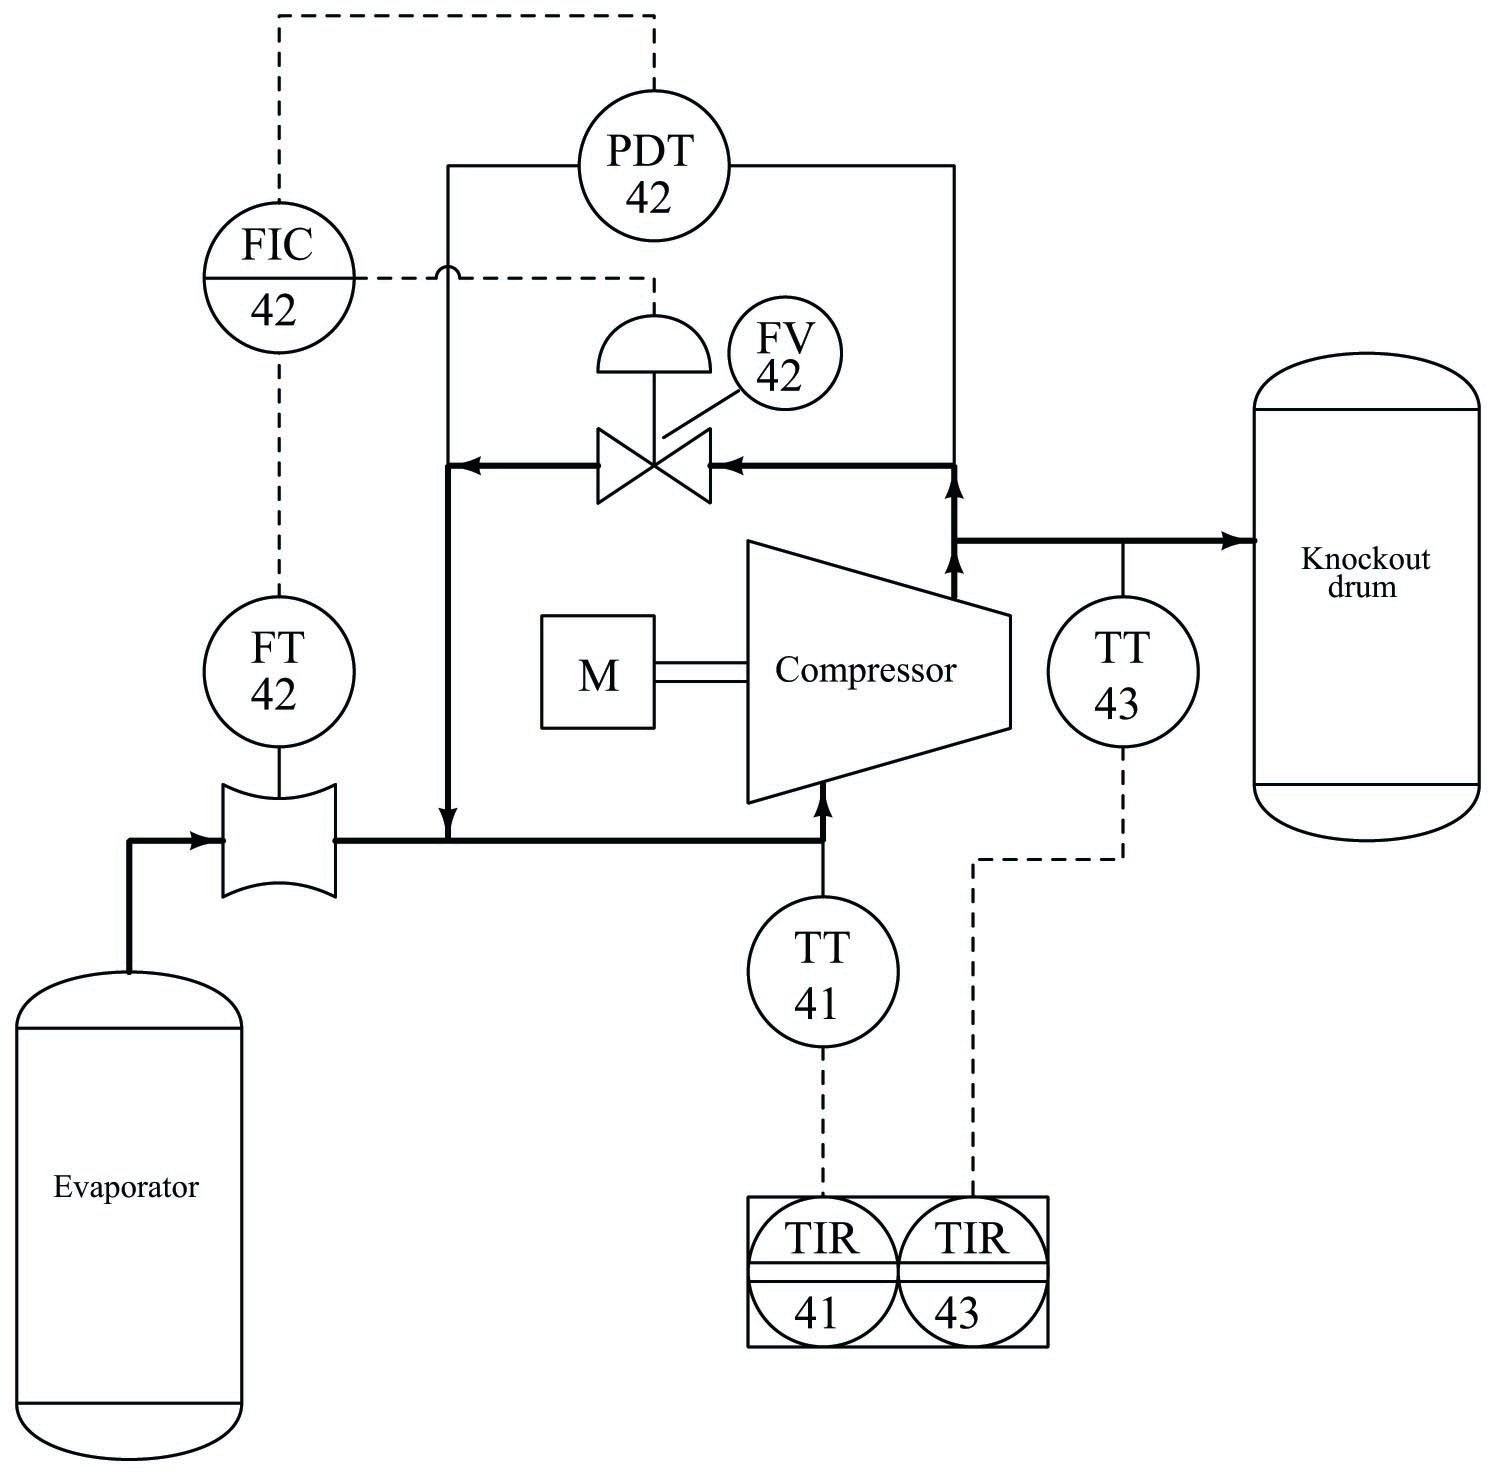 Drawings instrumentation process and P &